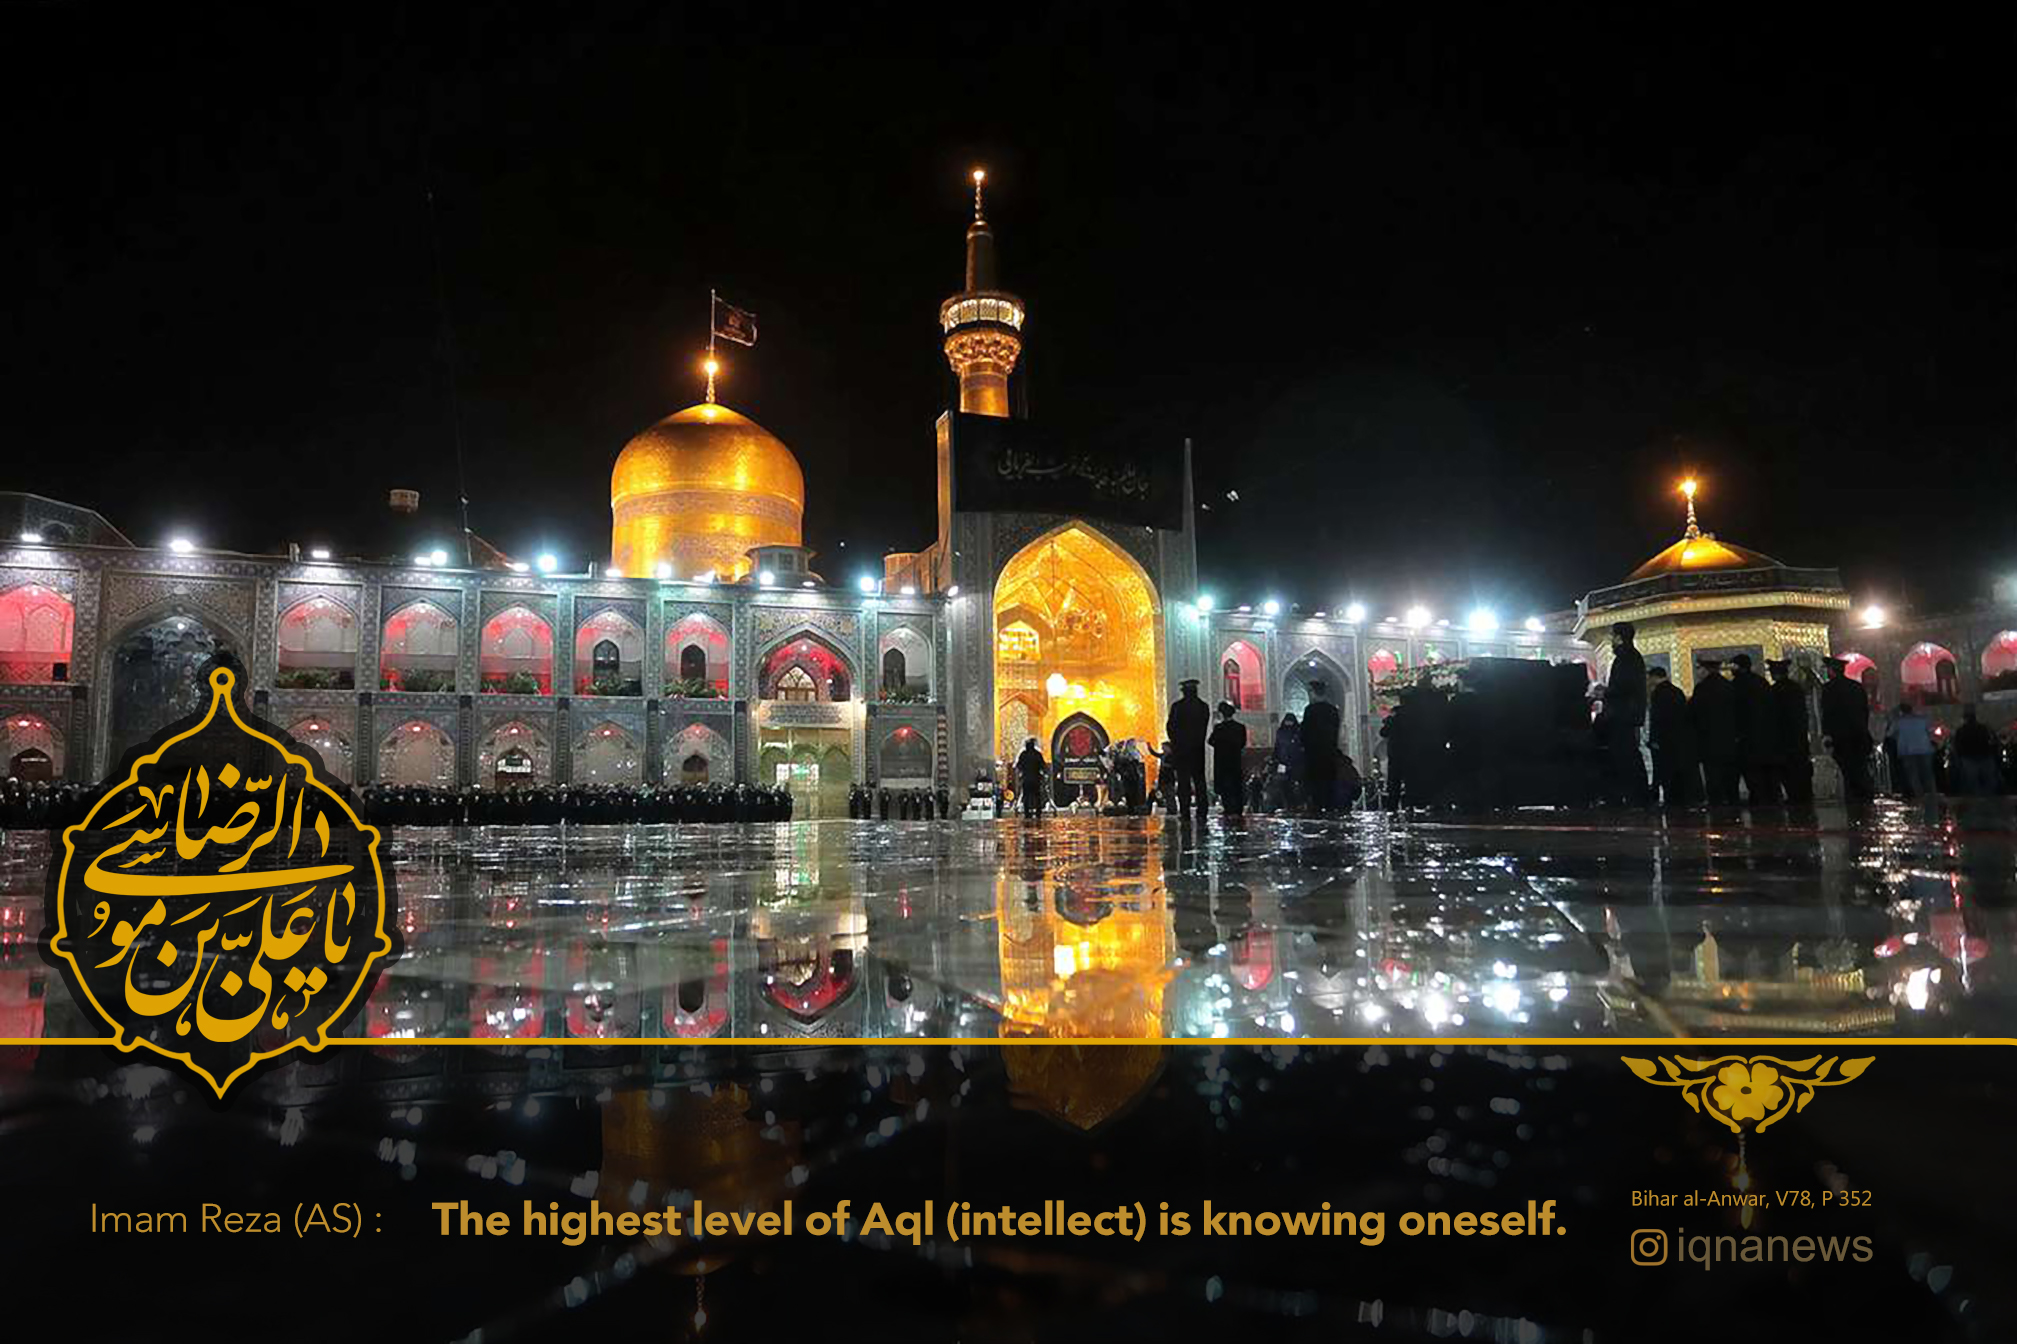 Highest Degree of Intellect in Imam Reza's (AS) Words